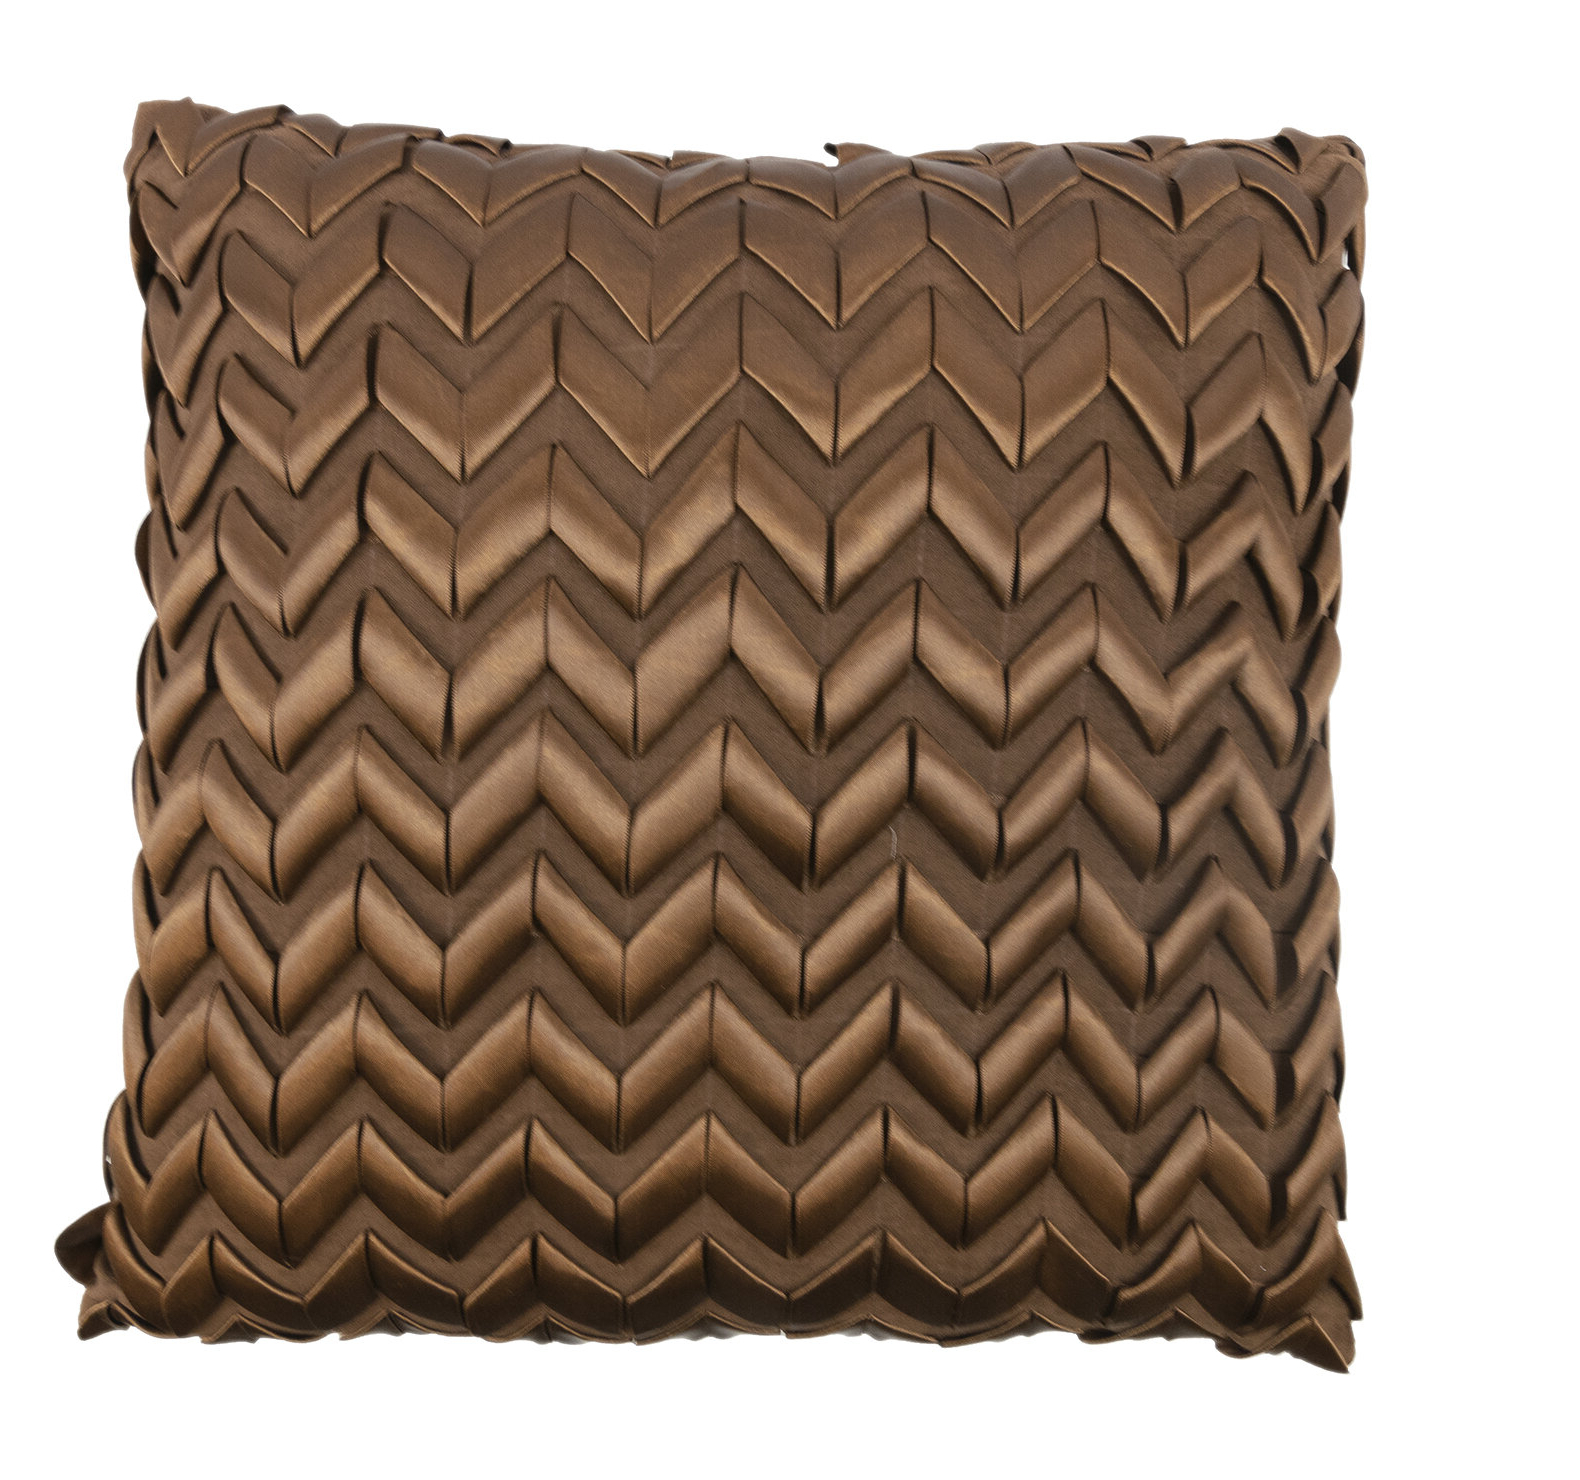 Salvato Decorative Ribbon Throw Pillow Regarding Best And Newest Salvato Sofas With Cushion (View 20 of 25)